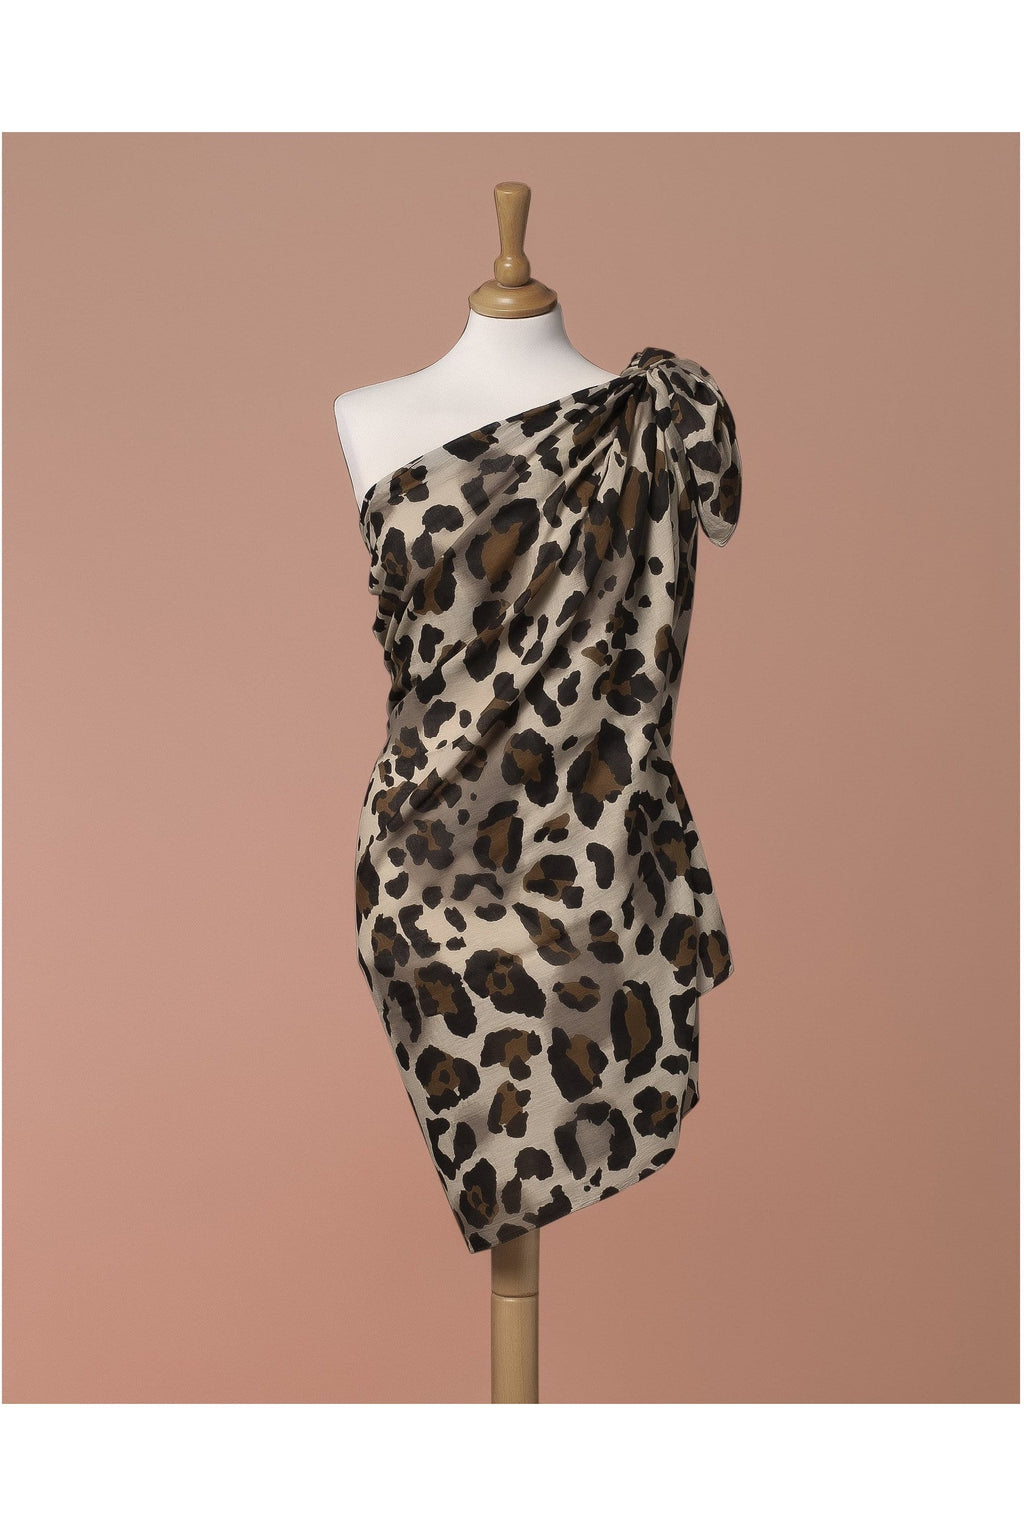 Sarong Pareo Leopard print Beige and brown color - Himelhoch's